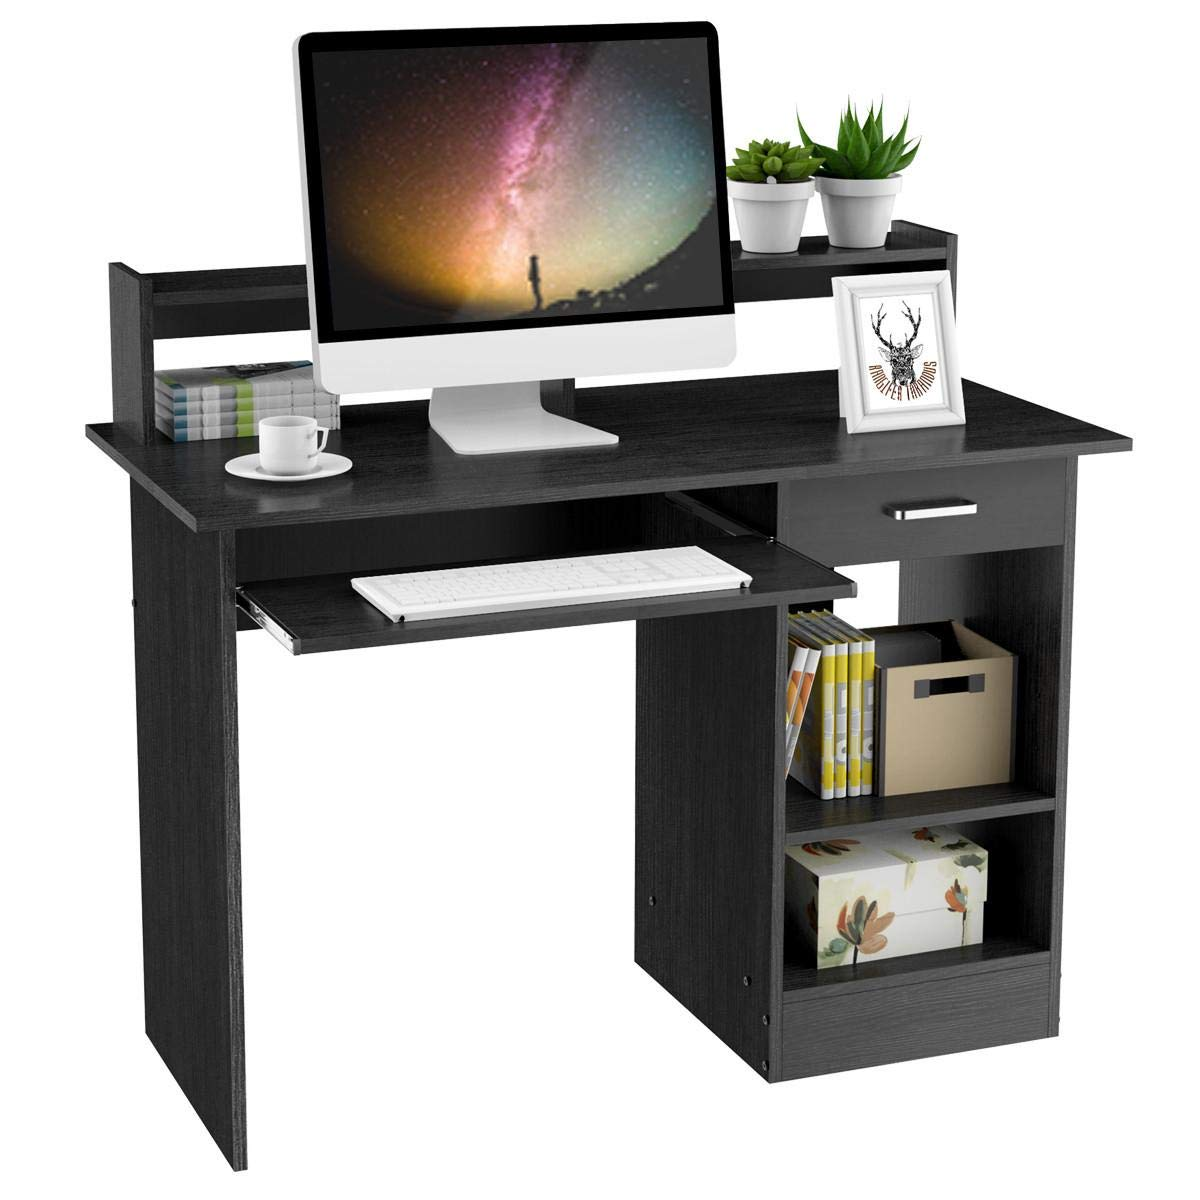 Yaheetech Black Computer Desk With Drawers Storage Shelf Keyboard Tray Home Office Laptop Desktop Table For Small Spaces Buy Online In Belarus At Belarus Desertcart Com Productid 124369986